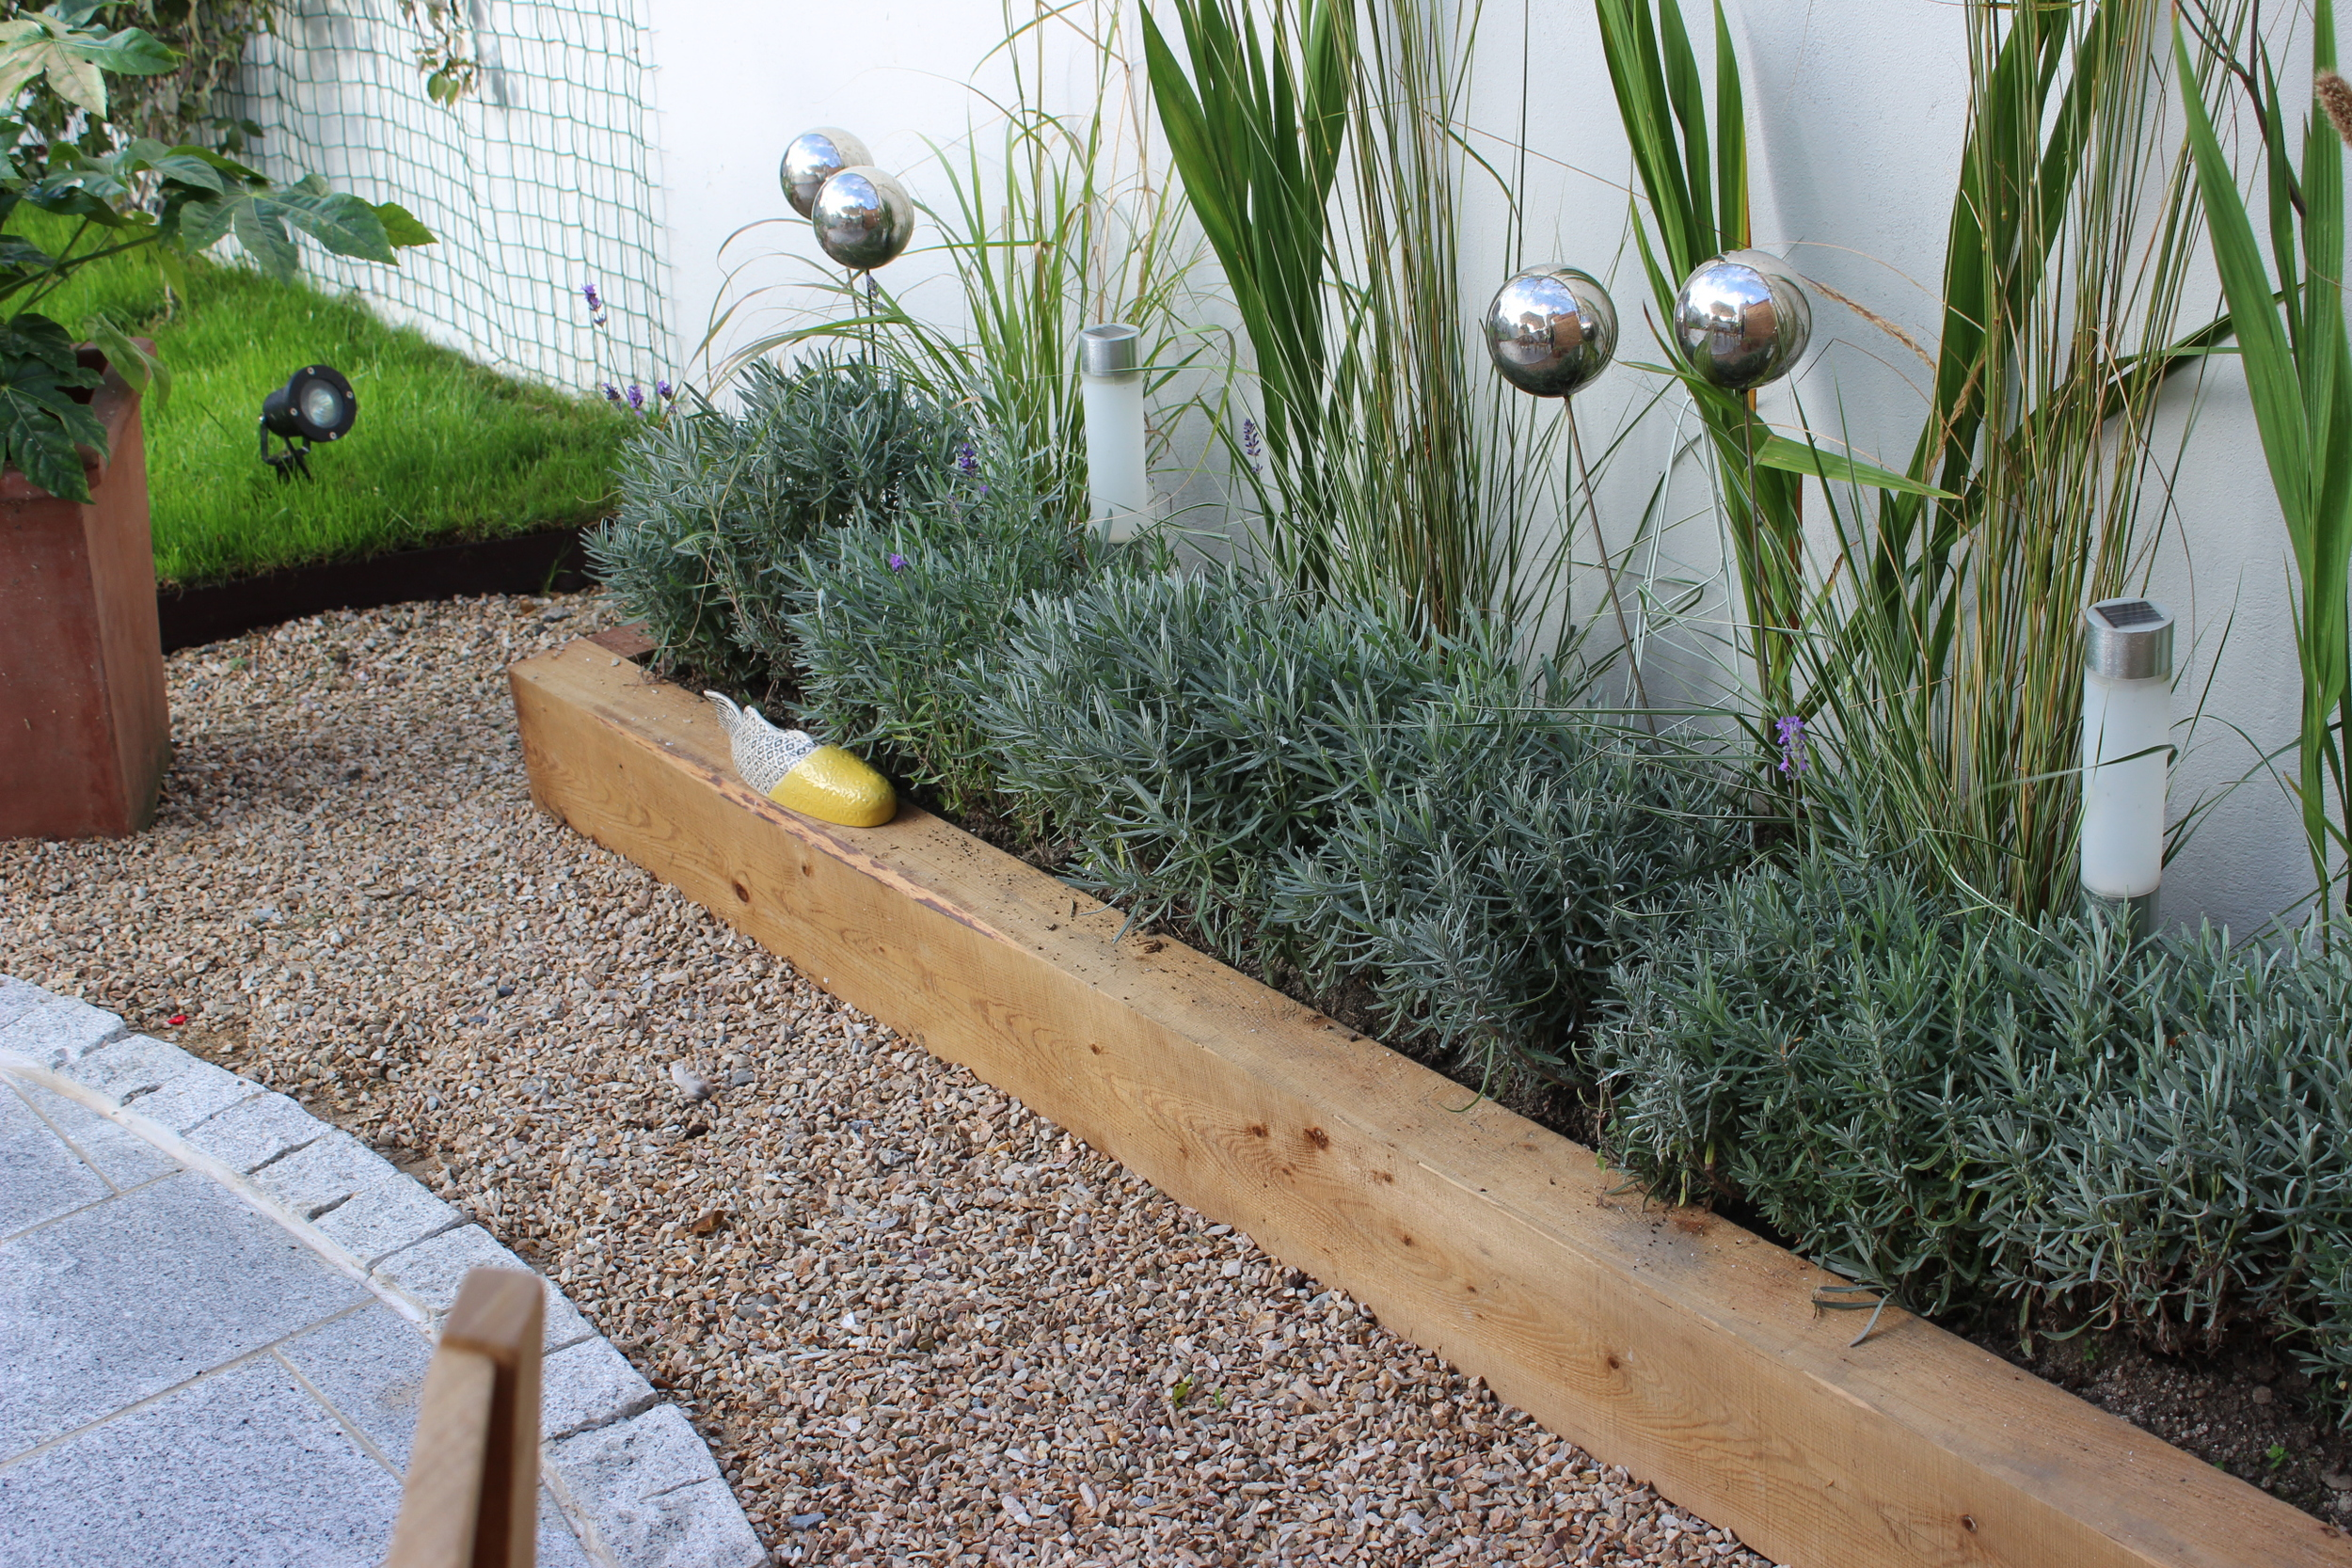 Sleepers and stipa grasses